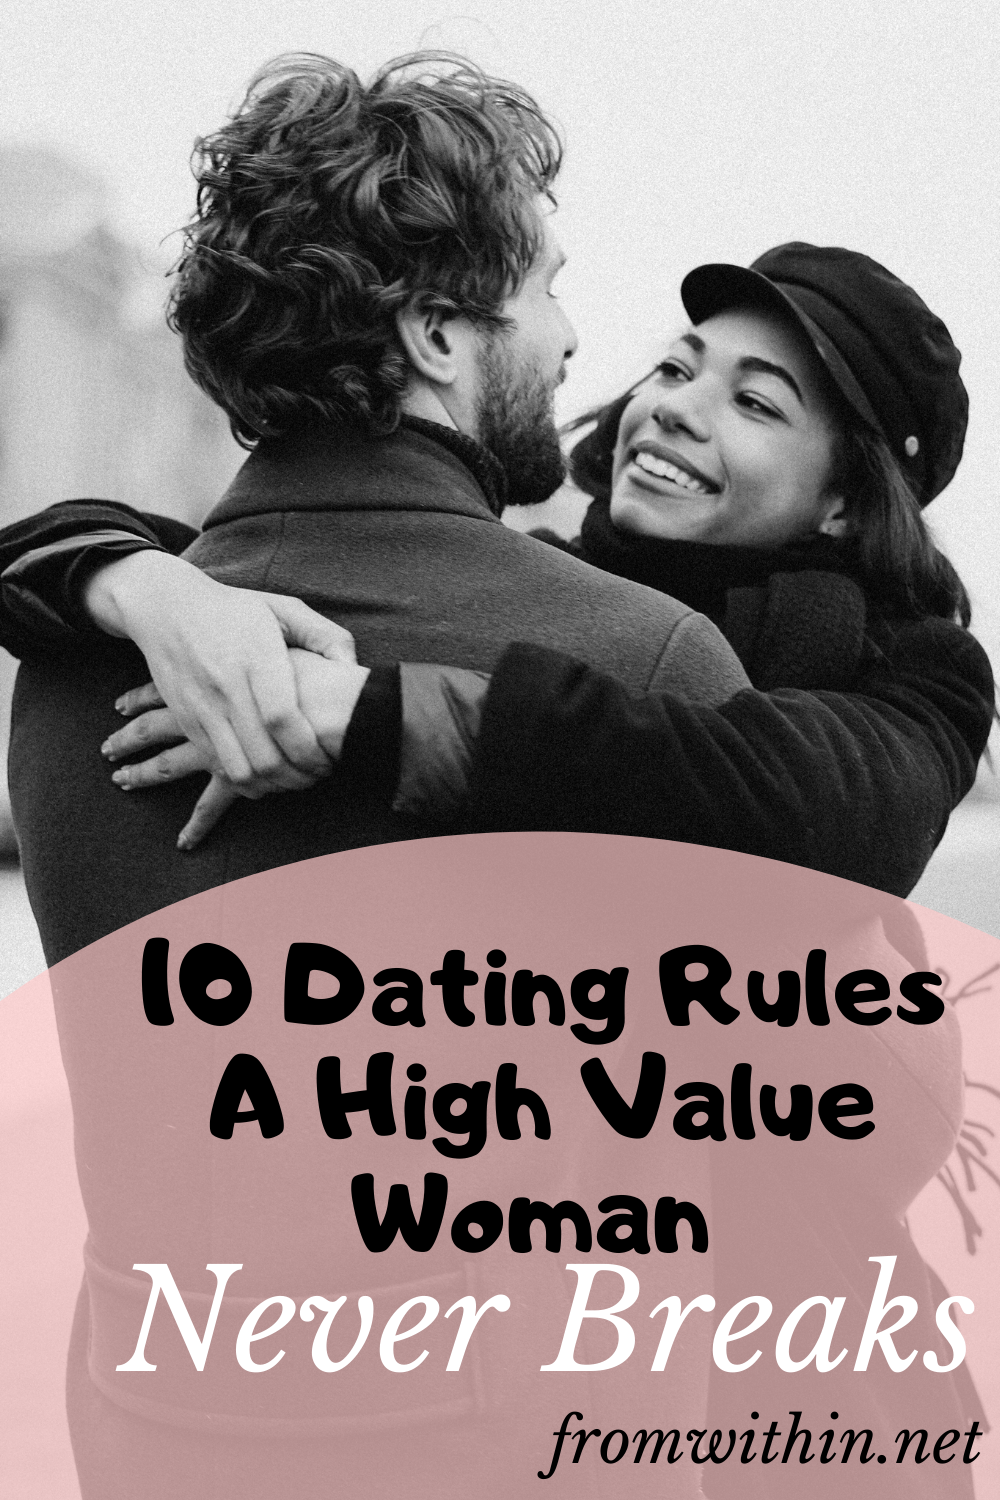 10 Dating Rules That A High Value Woman Never Breaks